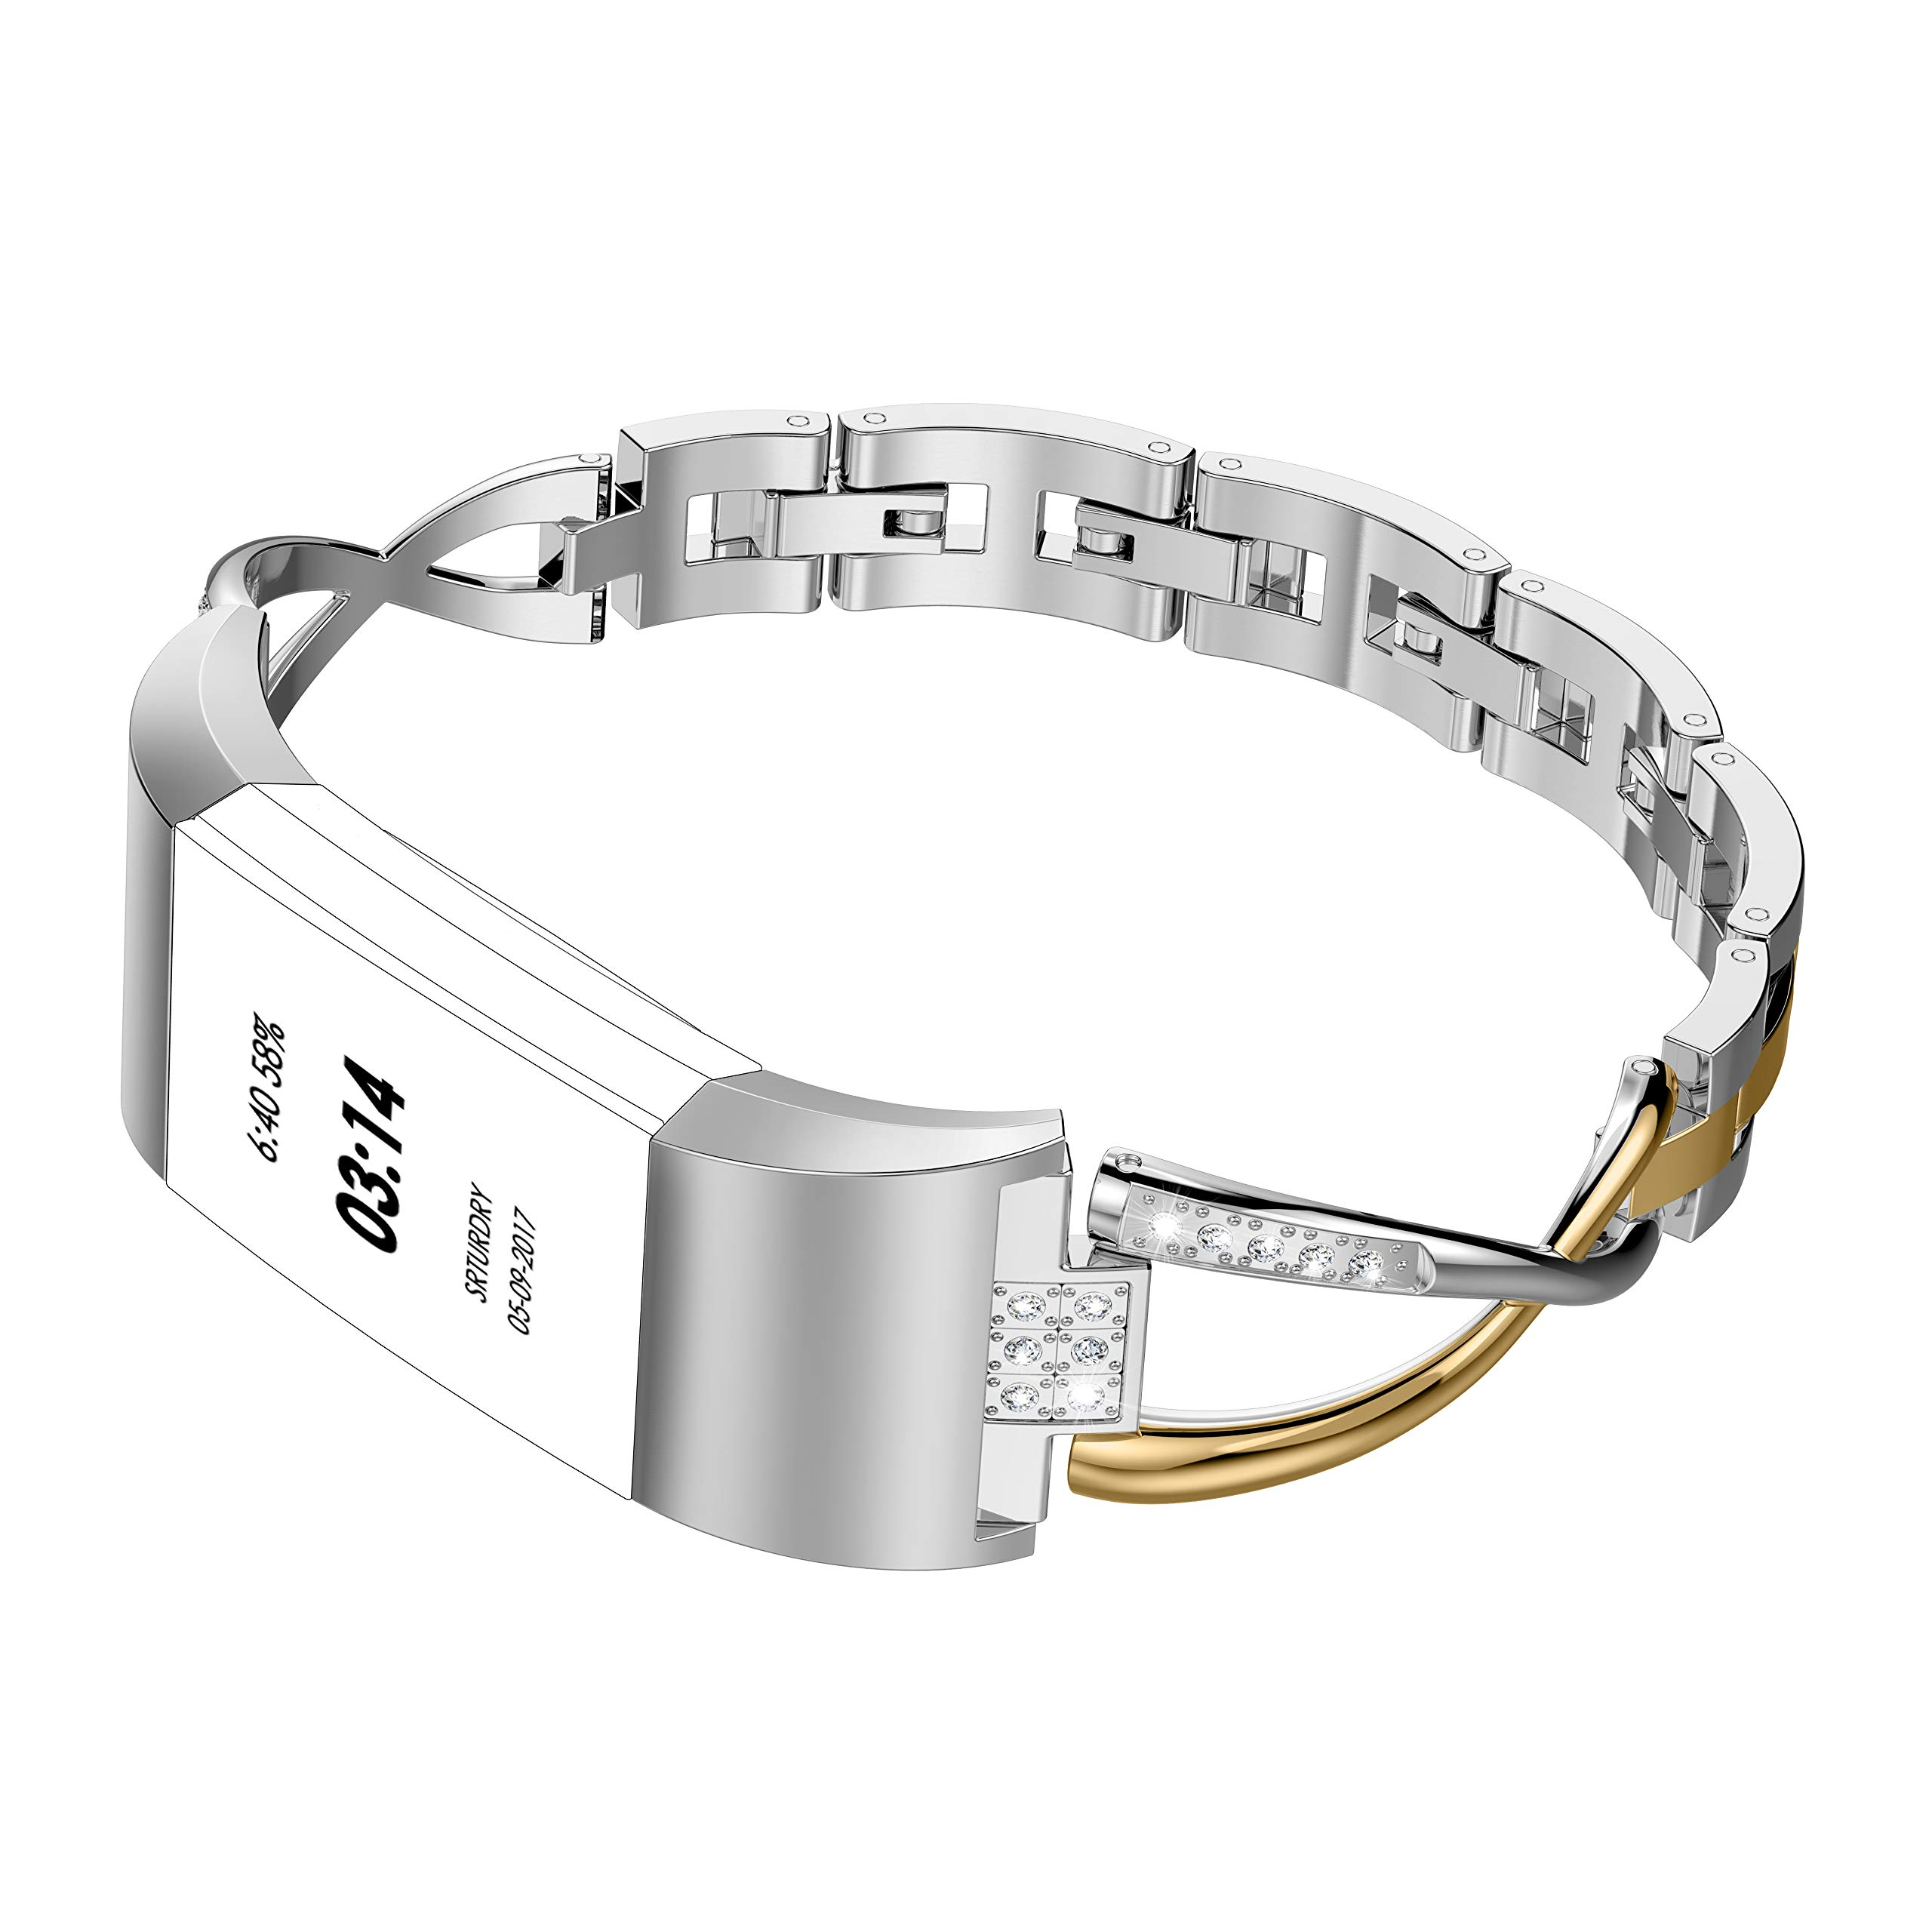 Wearlizer Replacement for Fitbit Charge 2 Bands for Women Metal Bangle/Bracelet/Assesories/Straps/Wrist Band for Fitbit Charge hr 2 Women Small Large (Gold+Silver) by Wearlizer